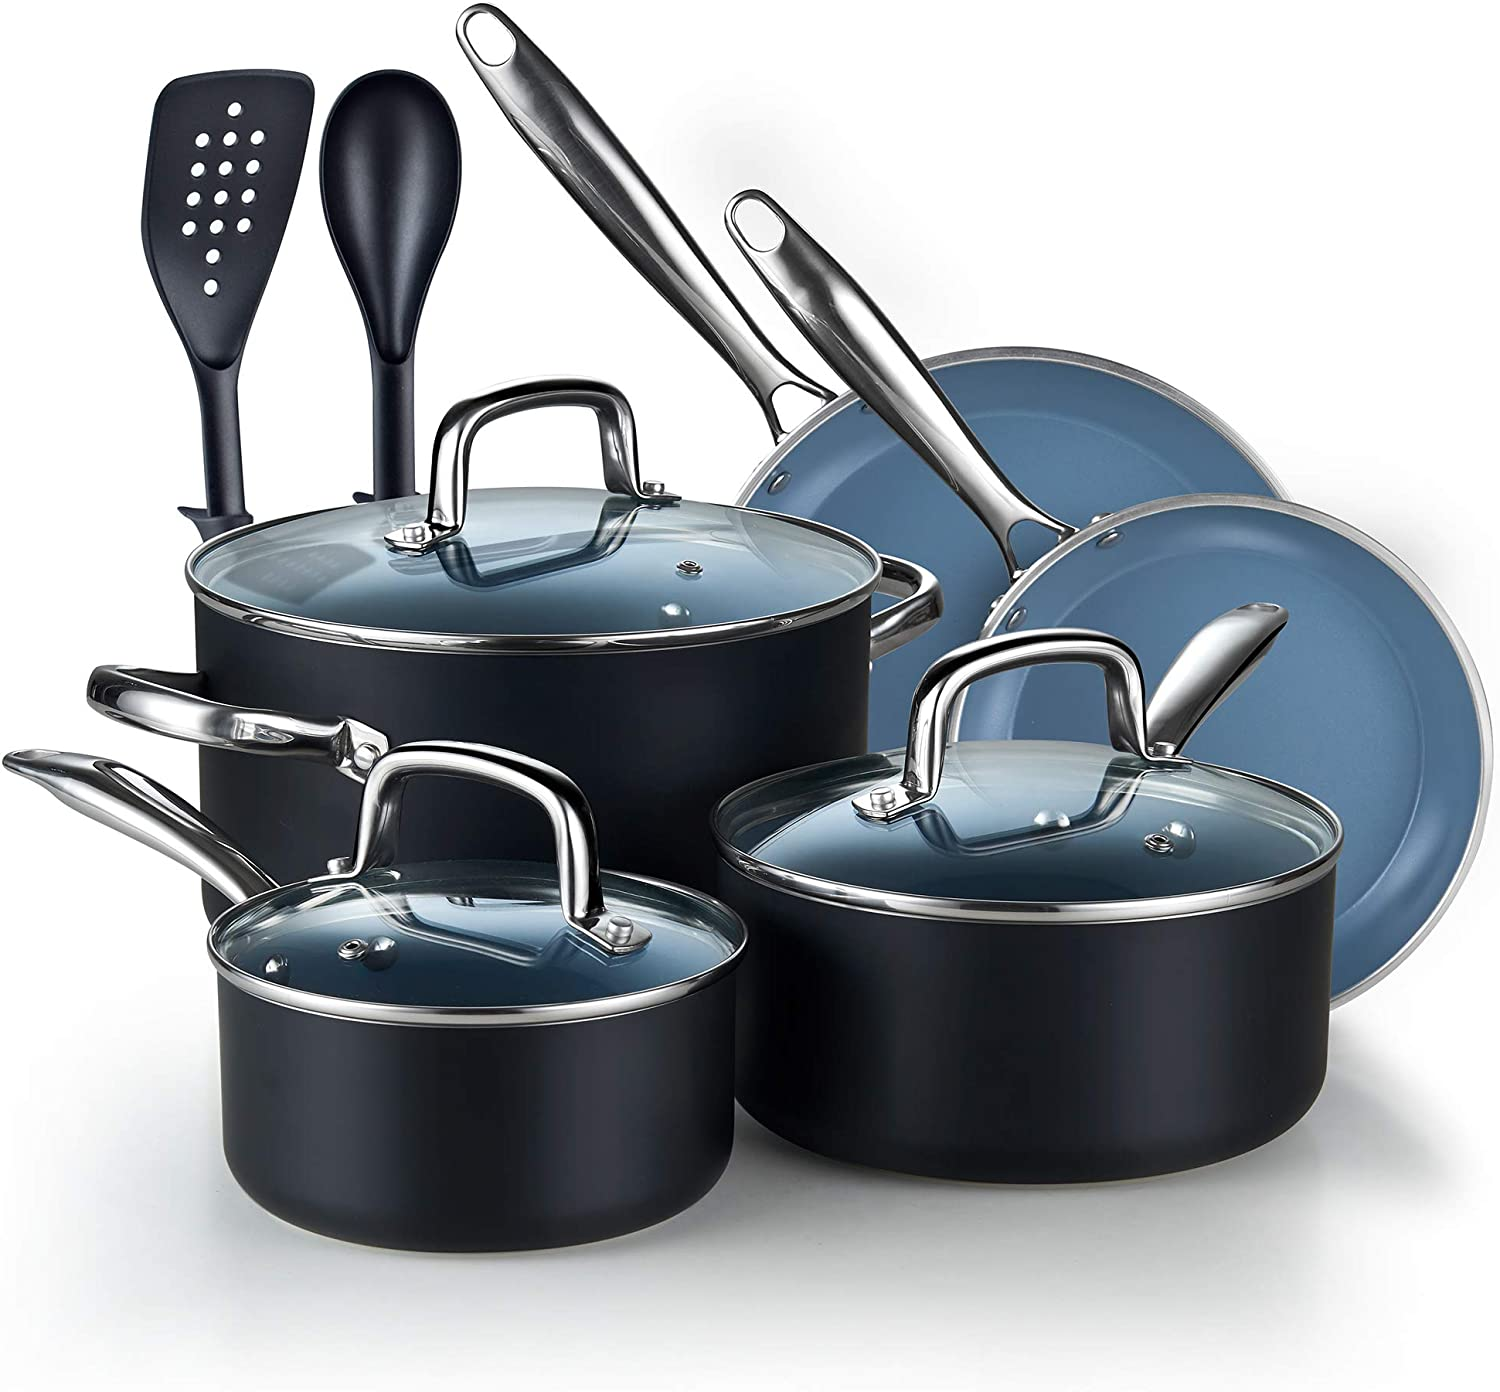 Cook N Home 10 Piece Nonstick Ceramic Coating Cookware Set, PC, Grey